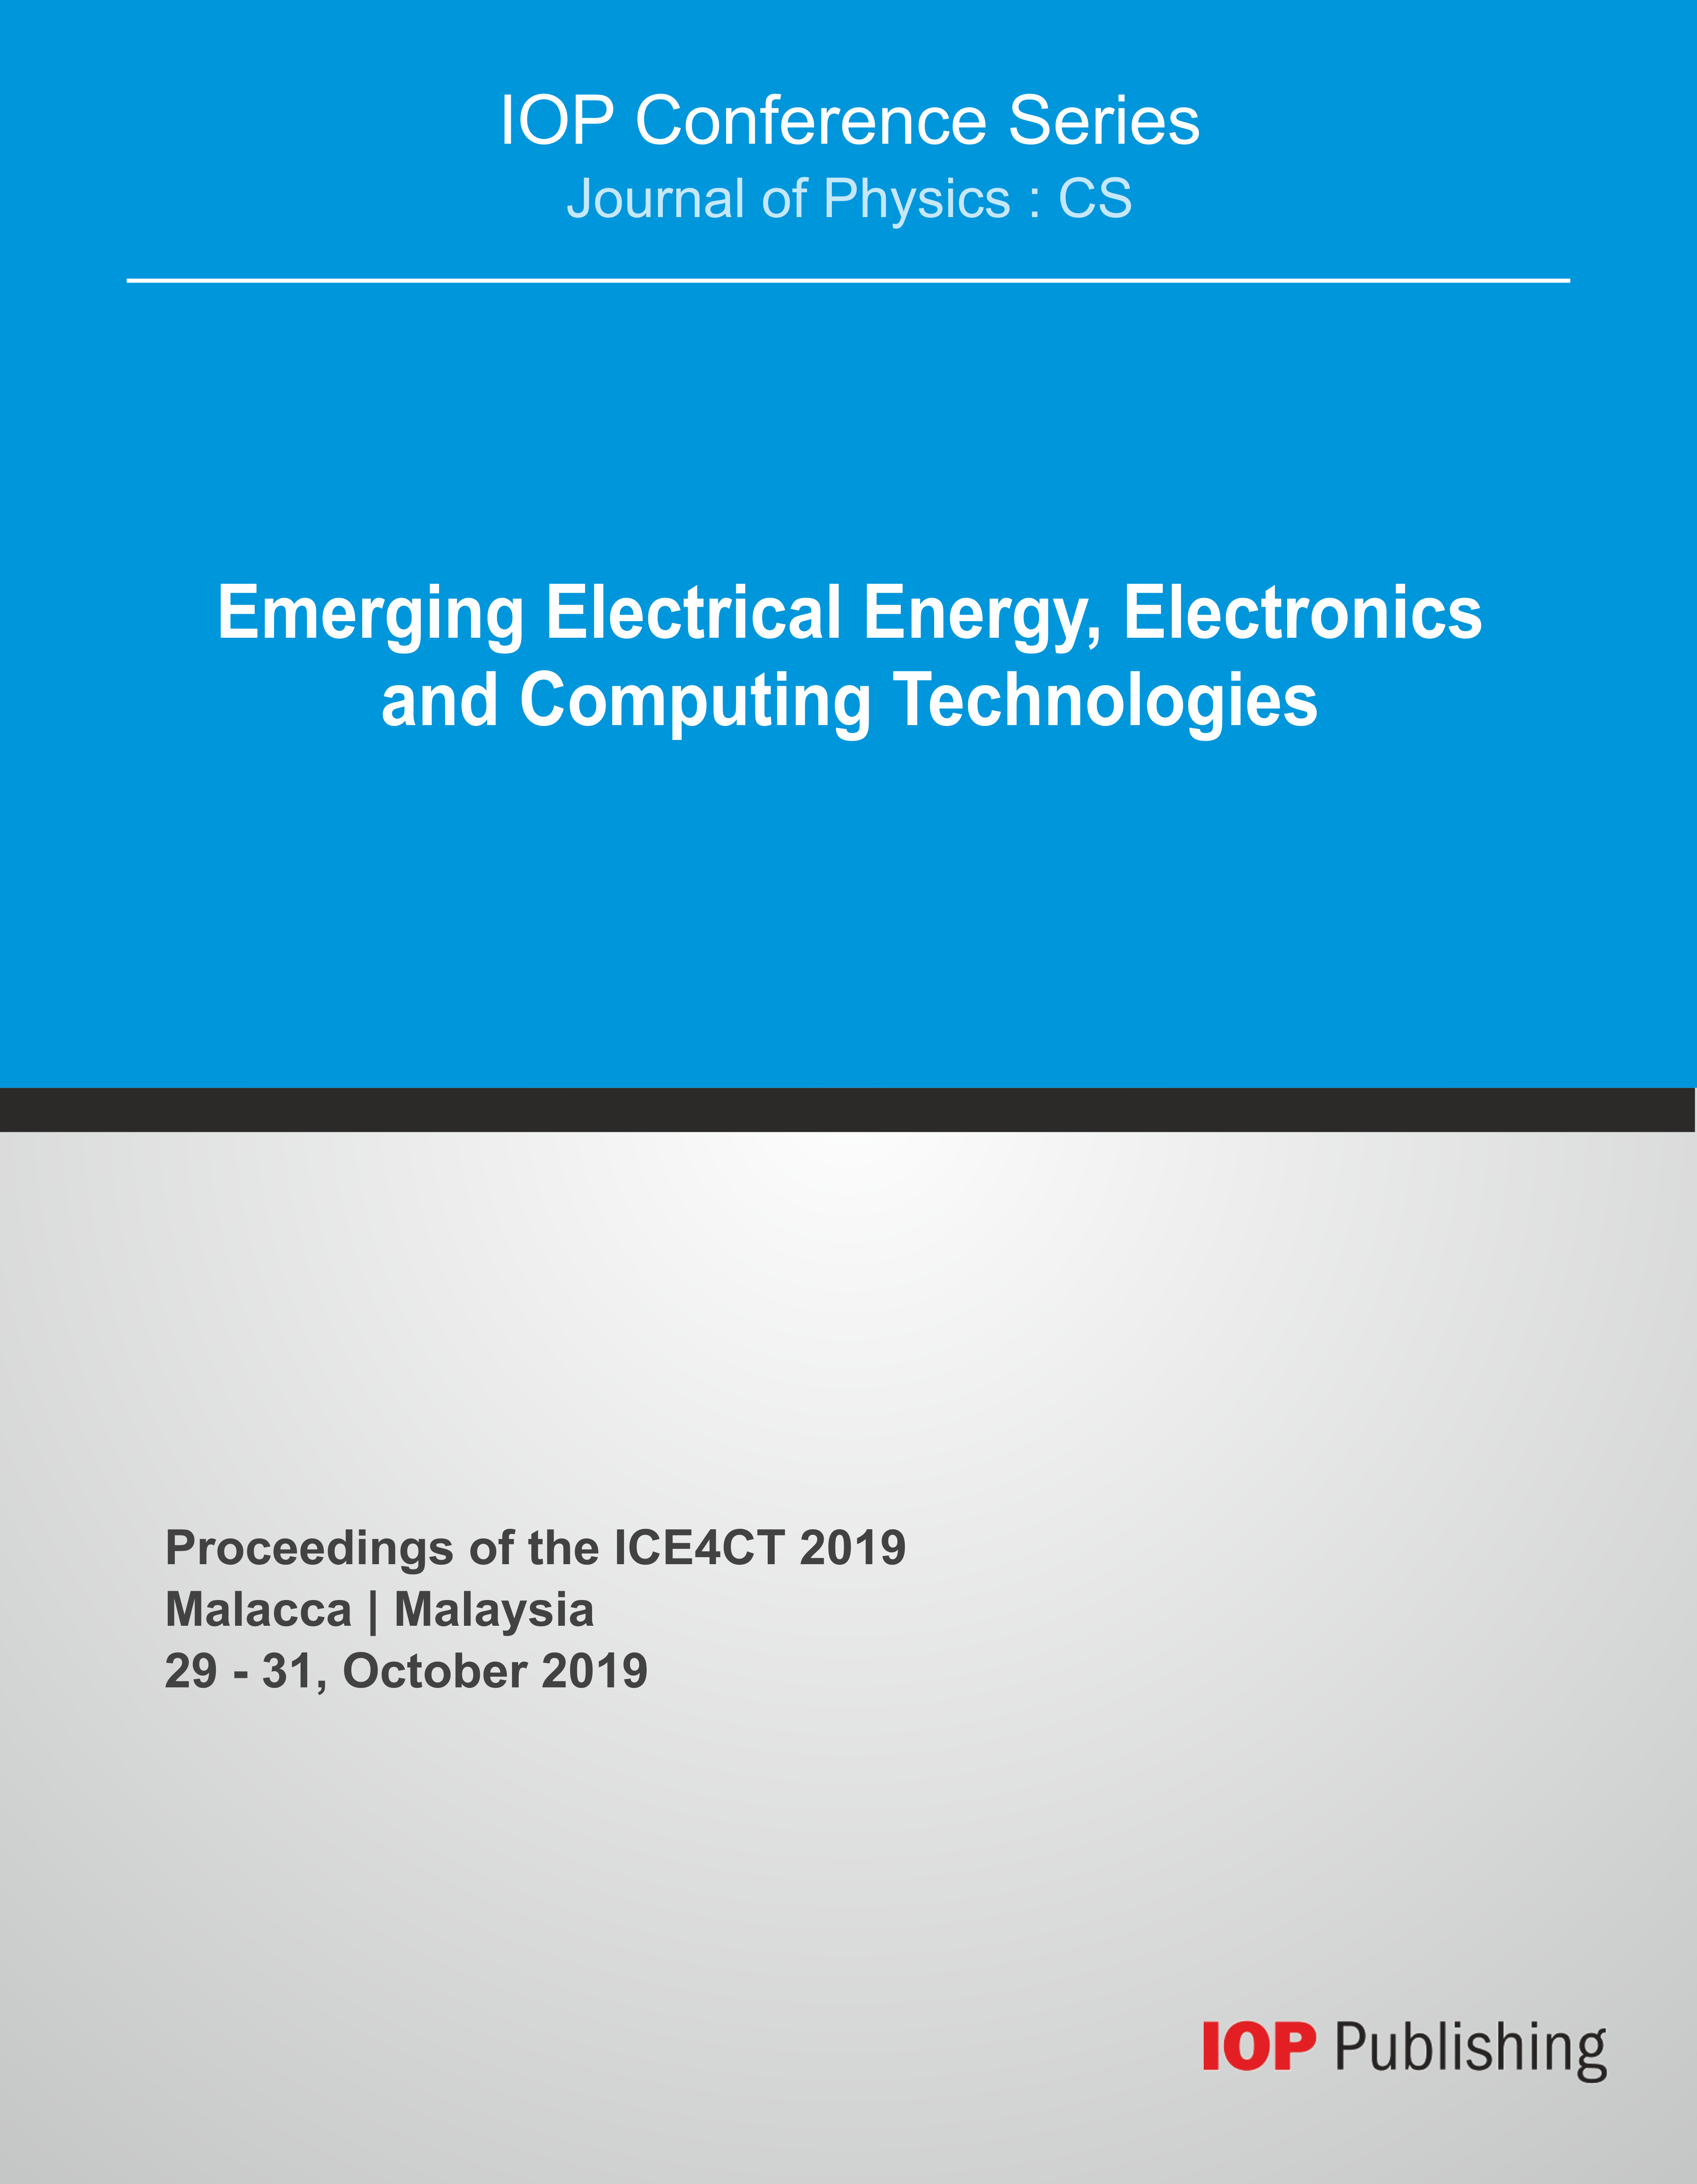 First International Conference on Emerging Electrical Energy